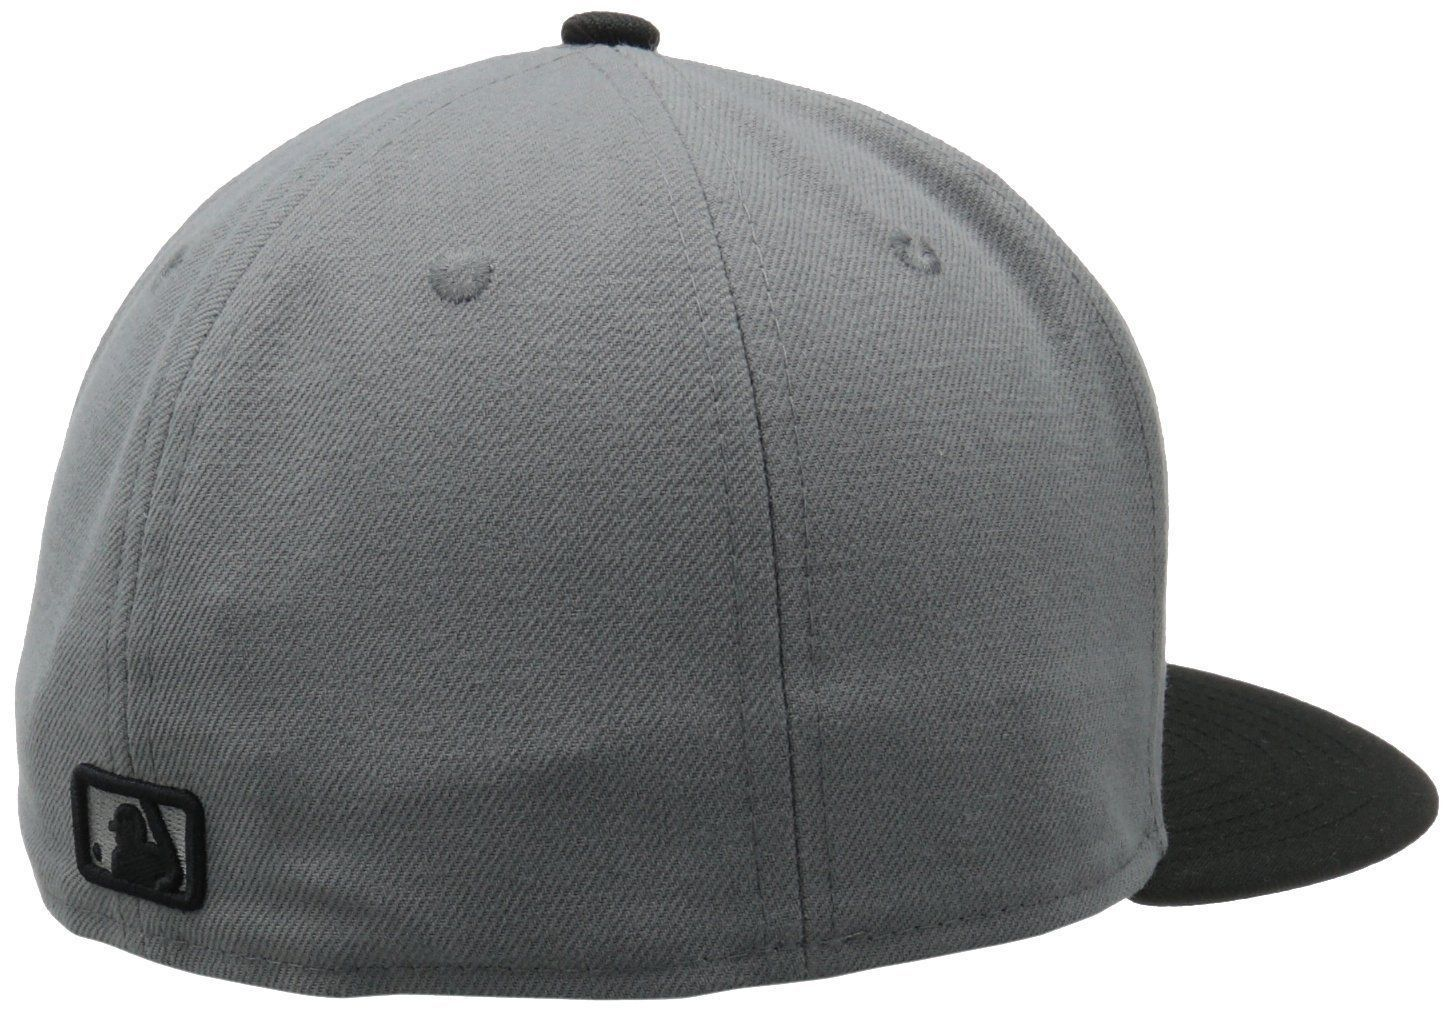 New Era 59Fifty MLB New York Yankees Storm Gray/Black  Baseball Fitted Cap Hat